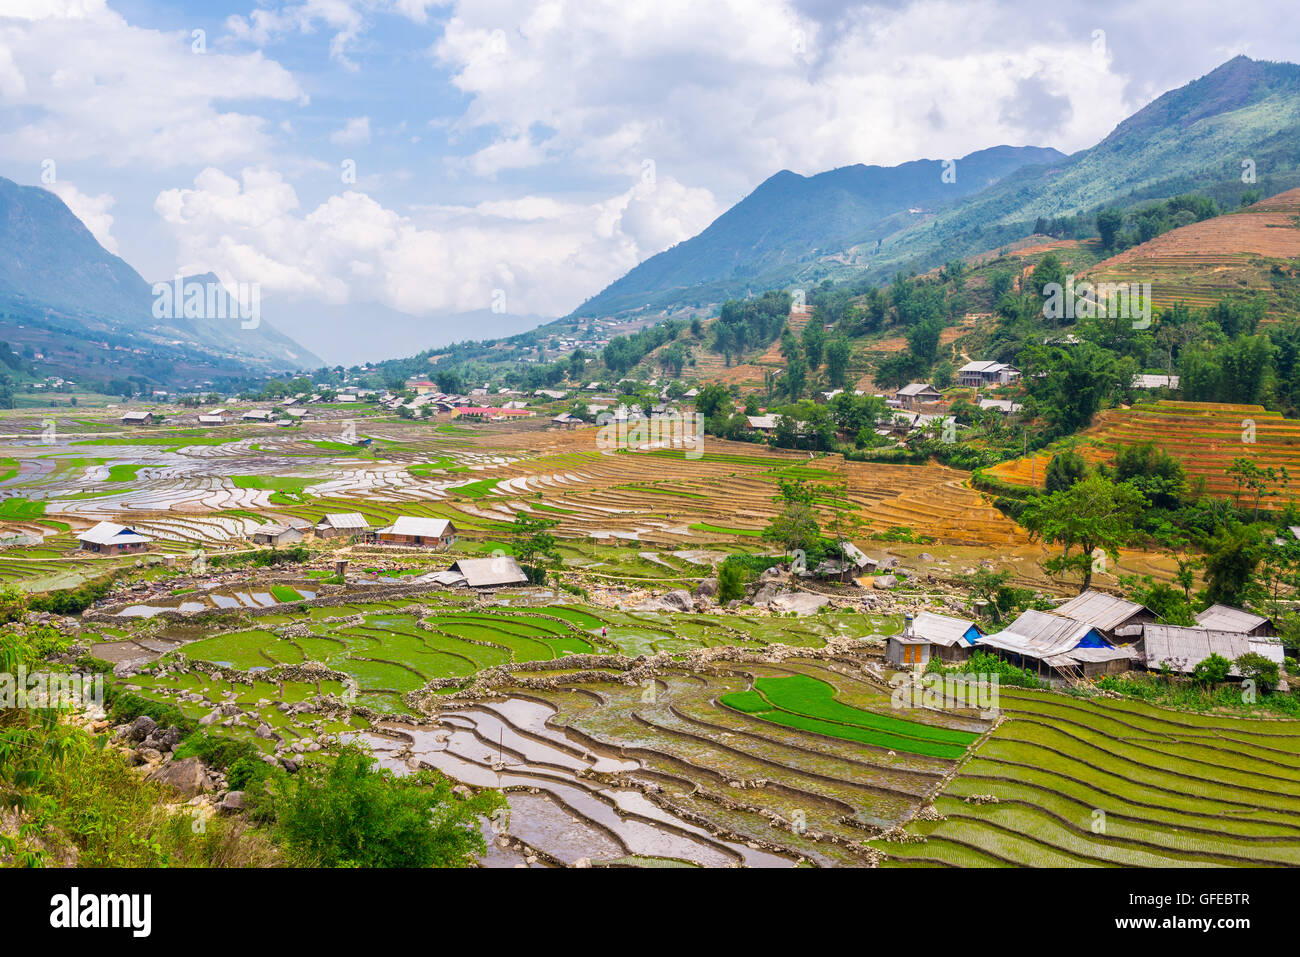 Traditional North Vietnamese rural landscape with small villages and rice paddies in Sapa, North Vietnam. - Stock Image